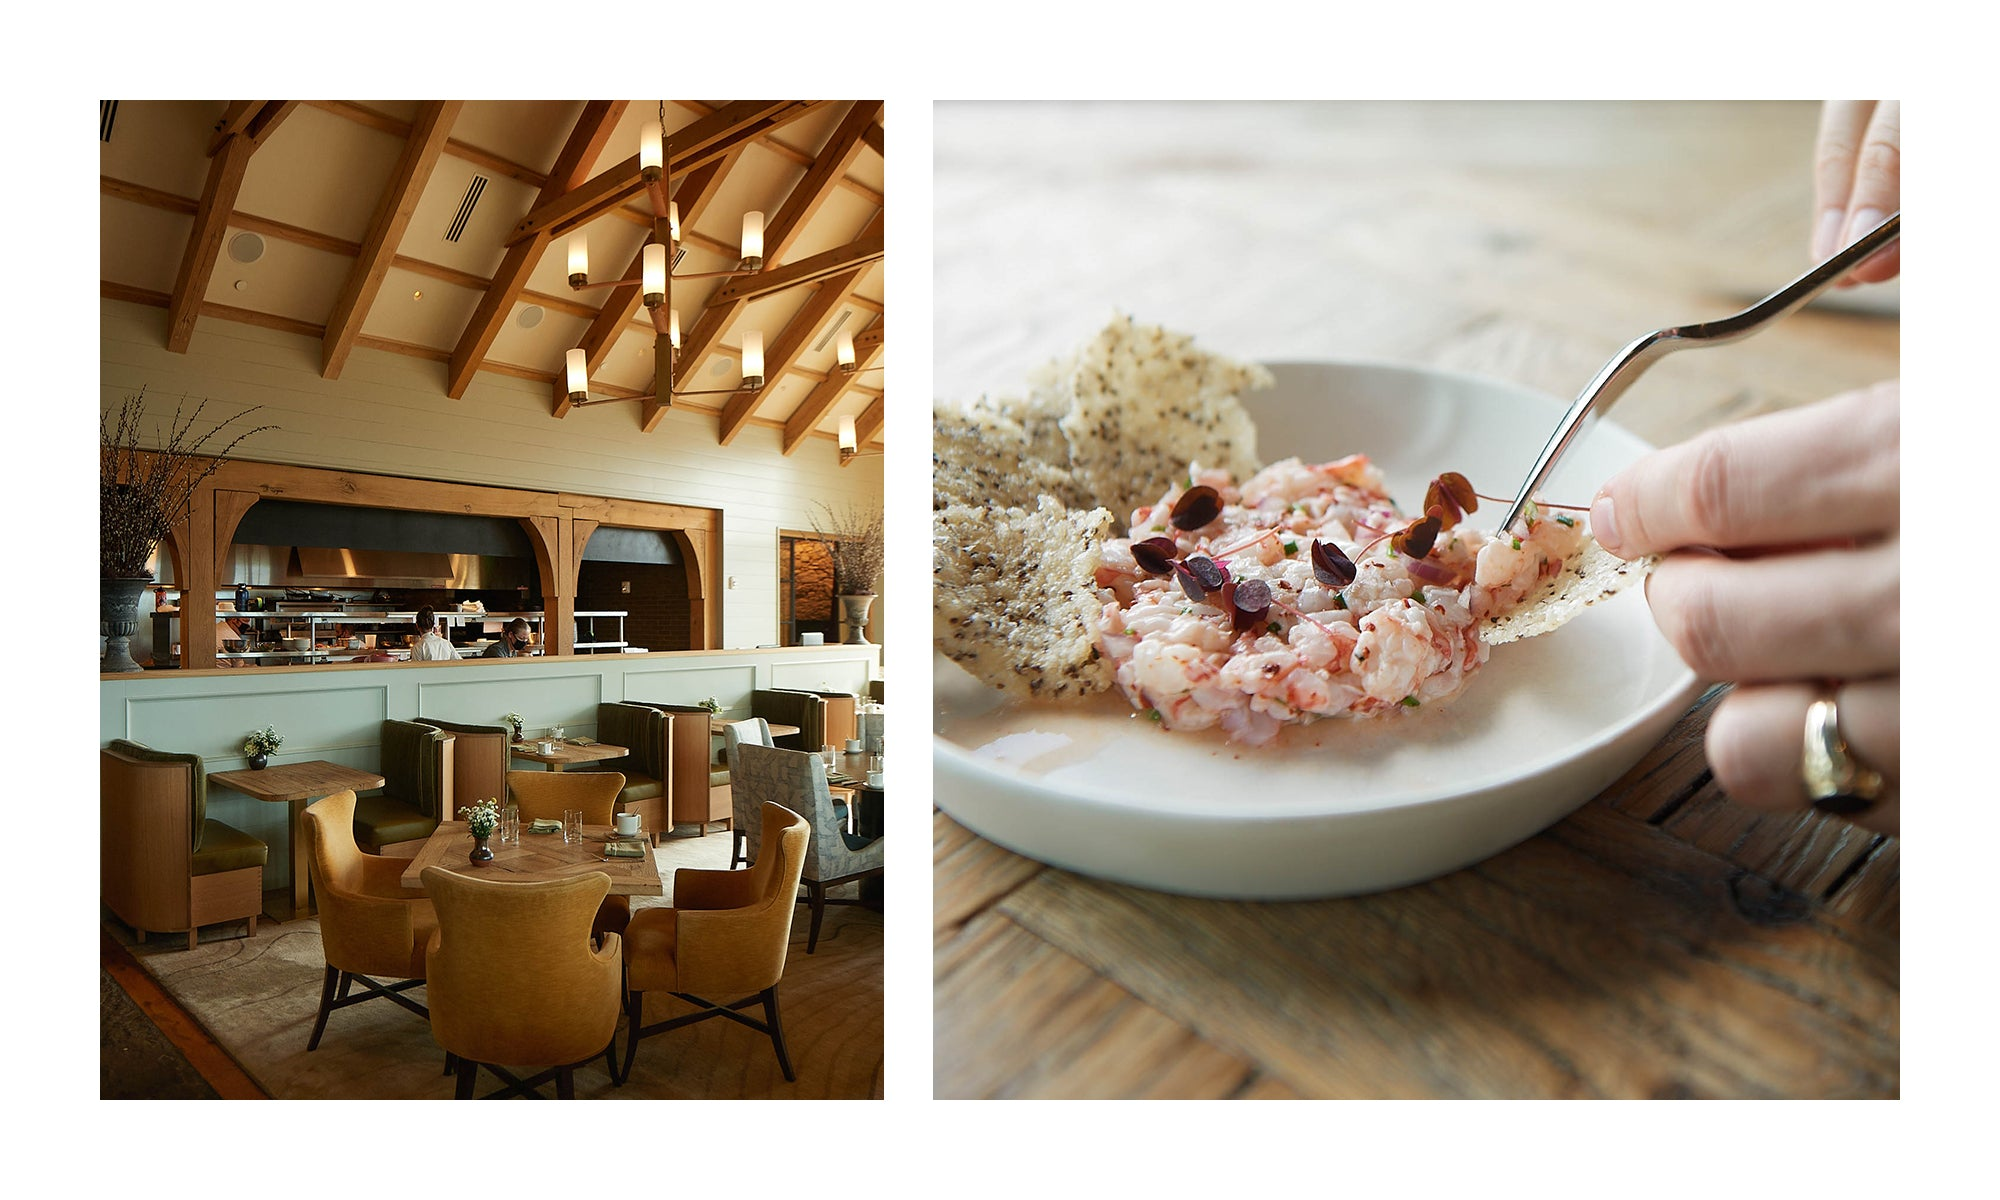 Left image: dining room at Blackberry Farm; Right image: closeup of a gourmet dish at Blackberry Farm